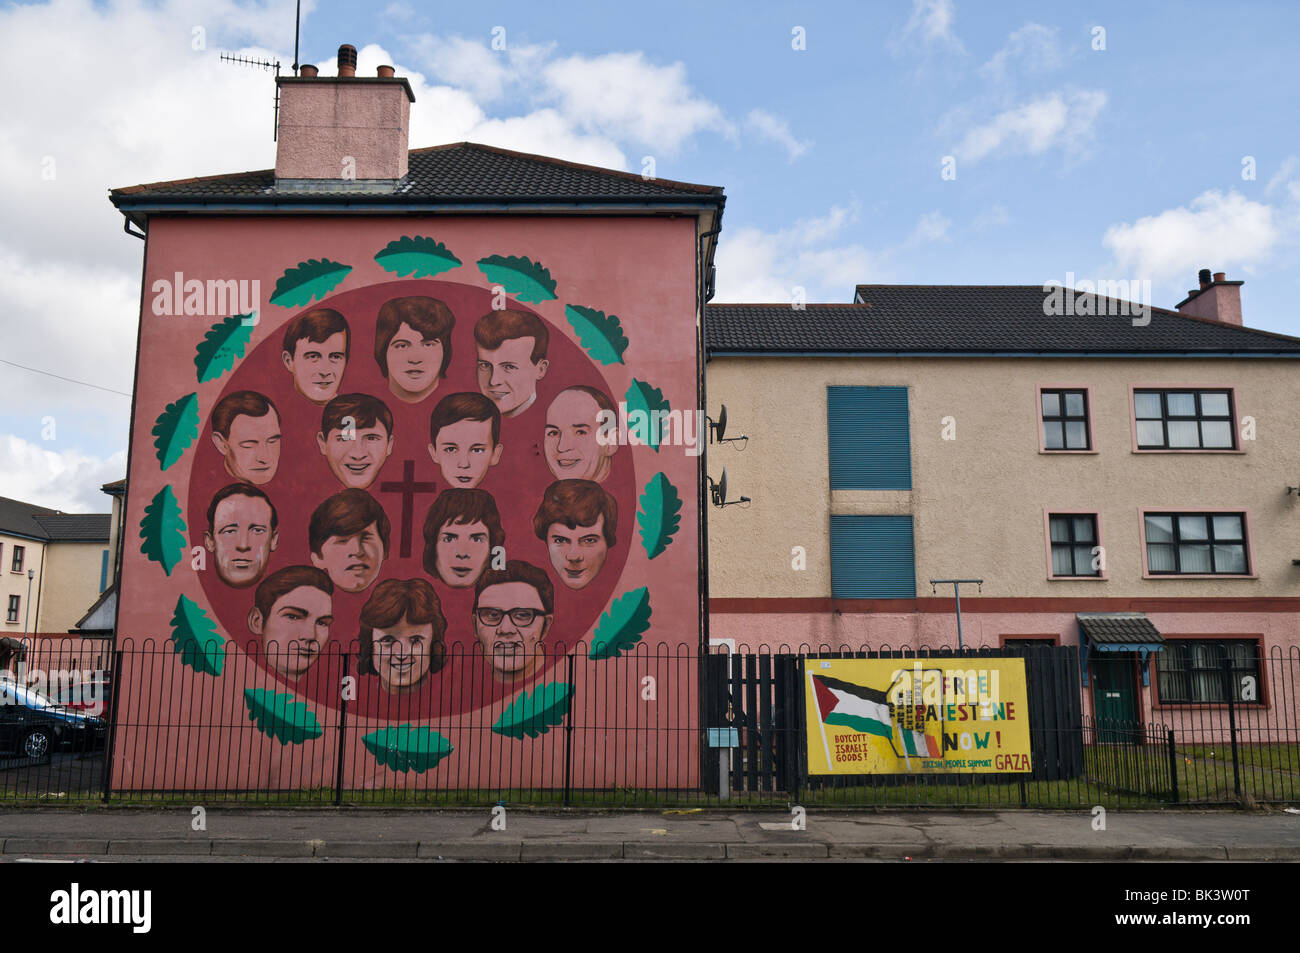 Bloody Sunday mural in Derry/Londonderry depicting the victims who died. - Stock Image